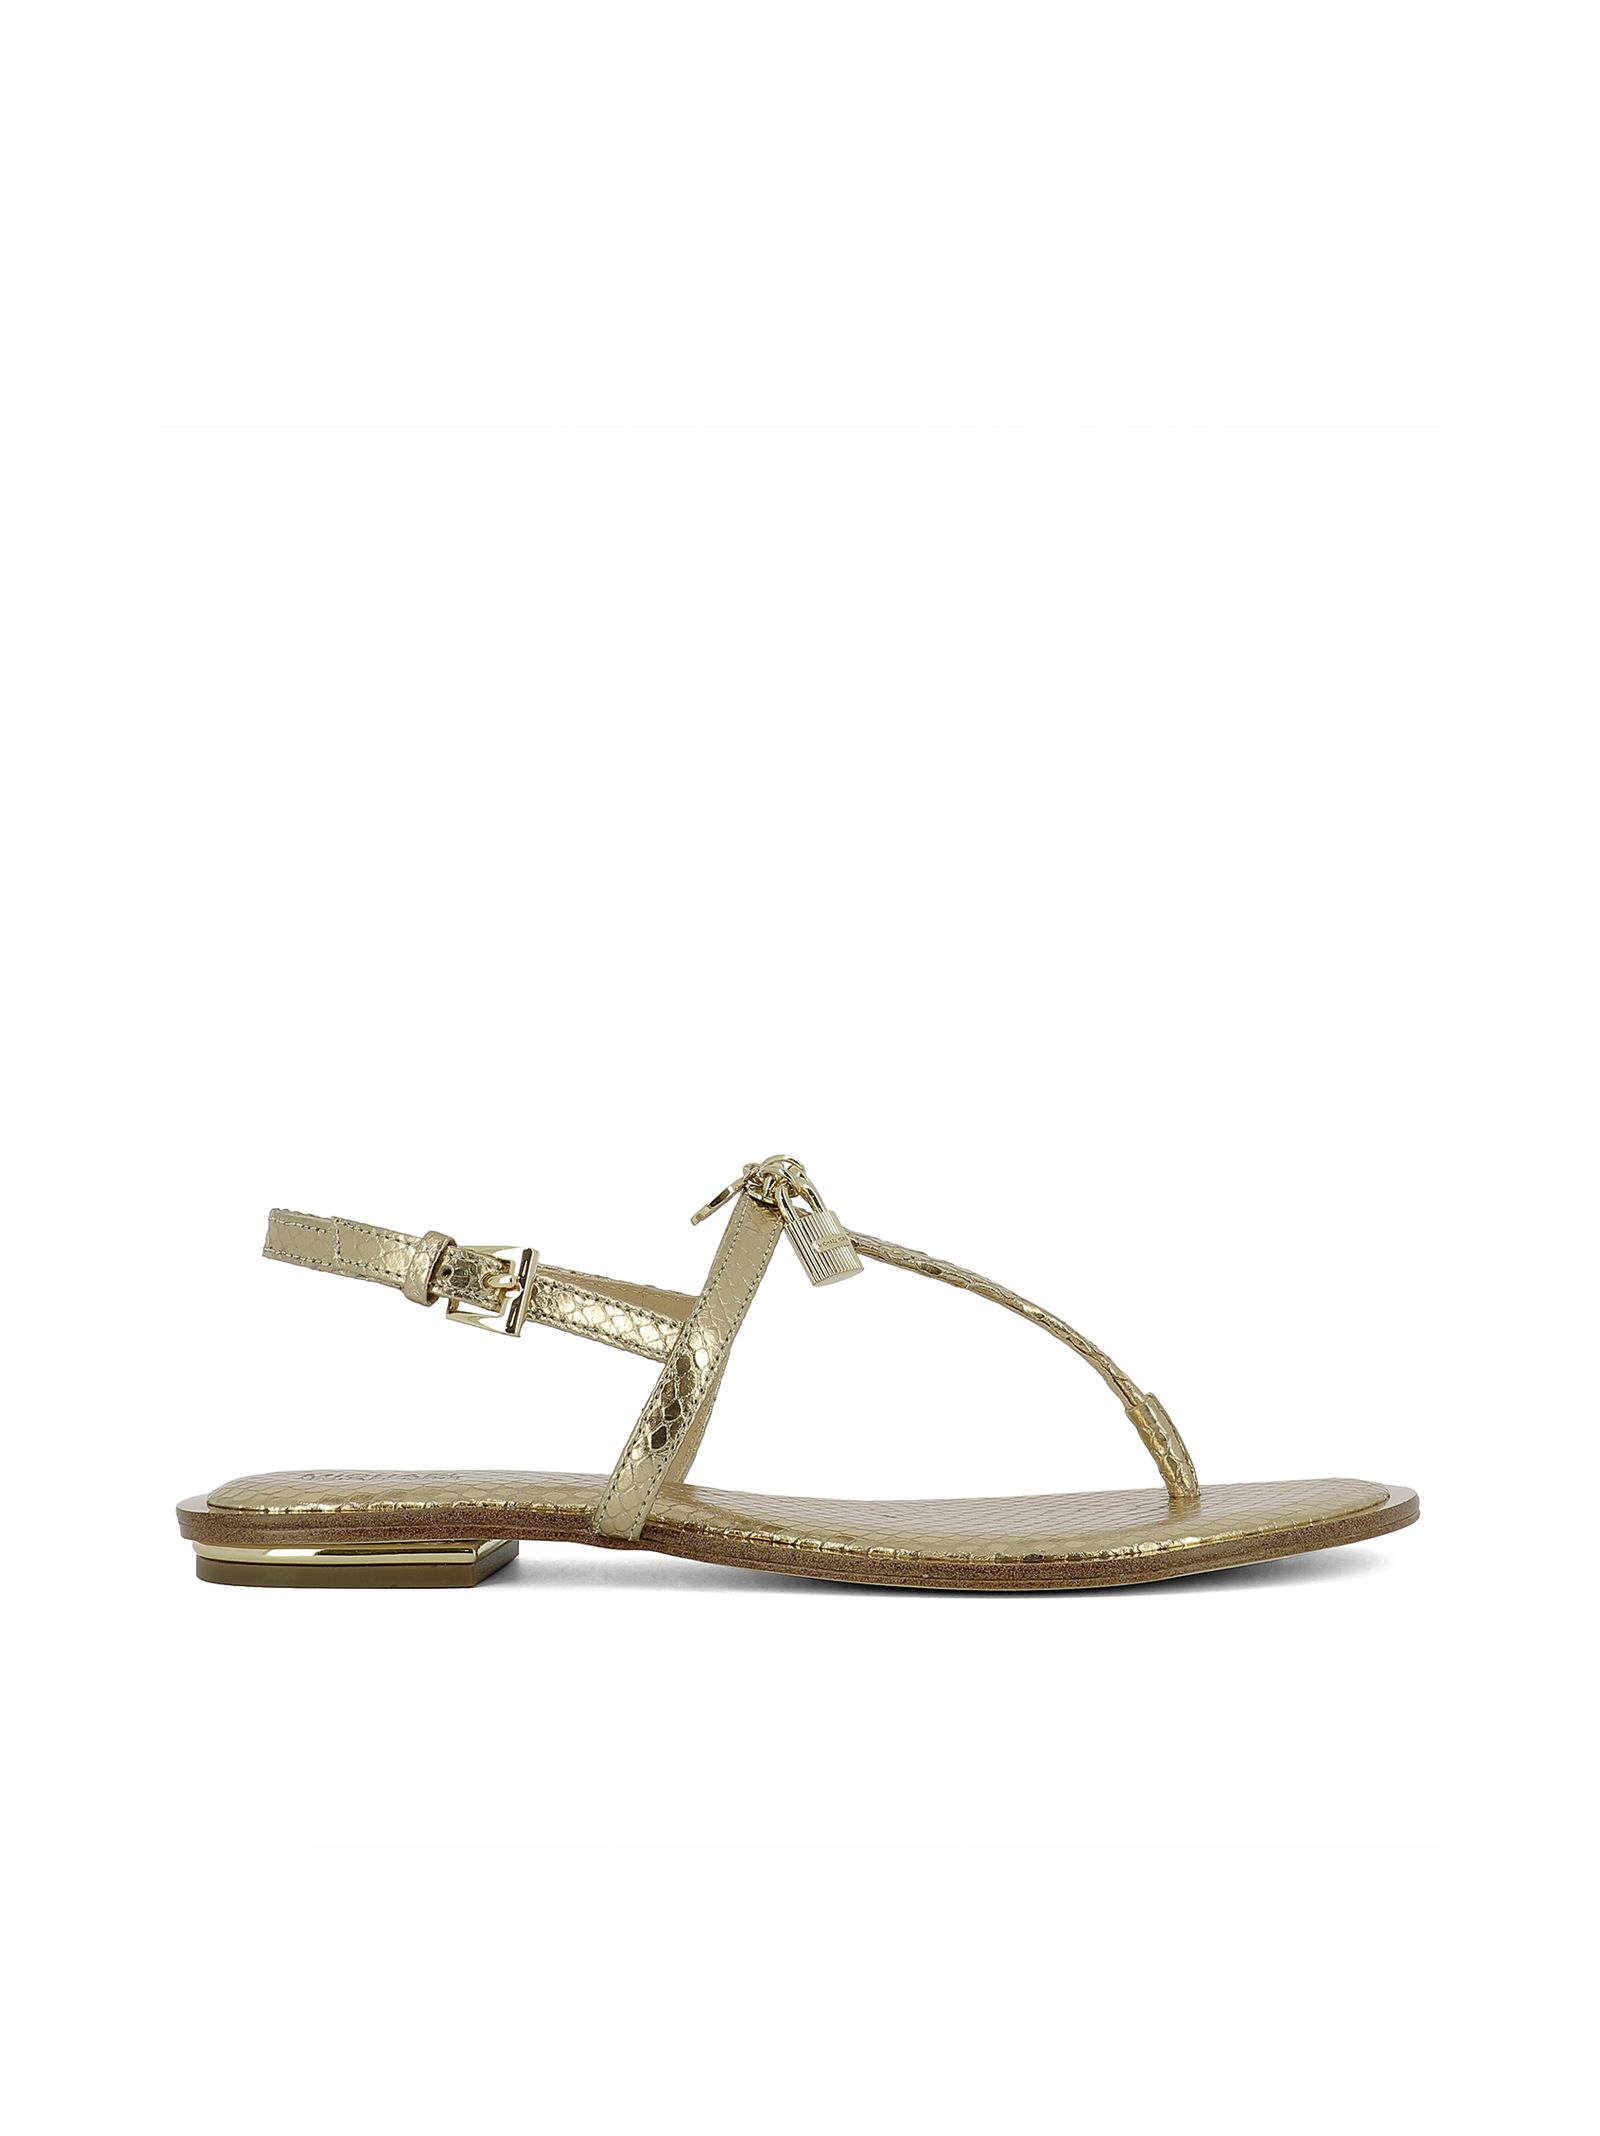 michael kors female gold leather sandals